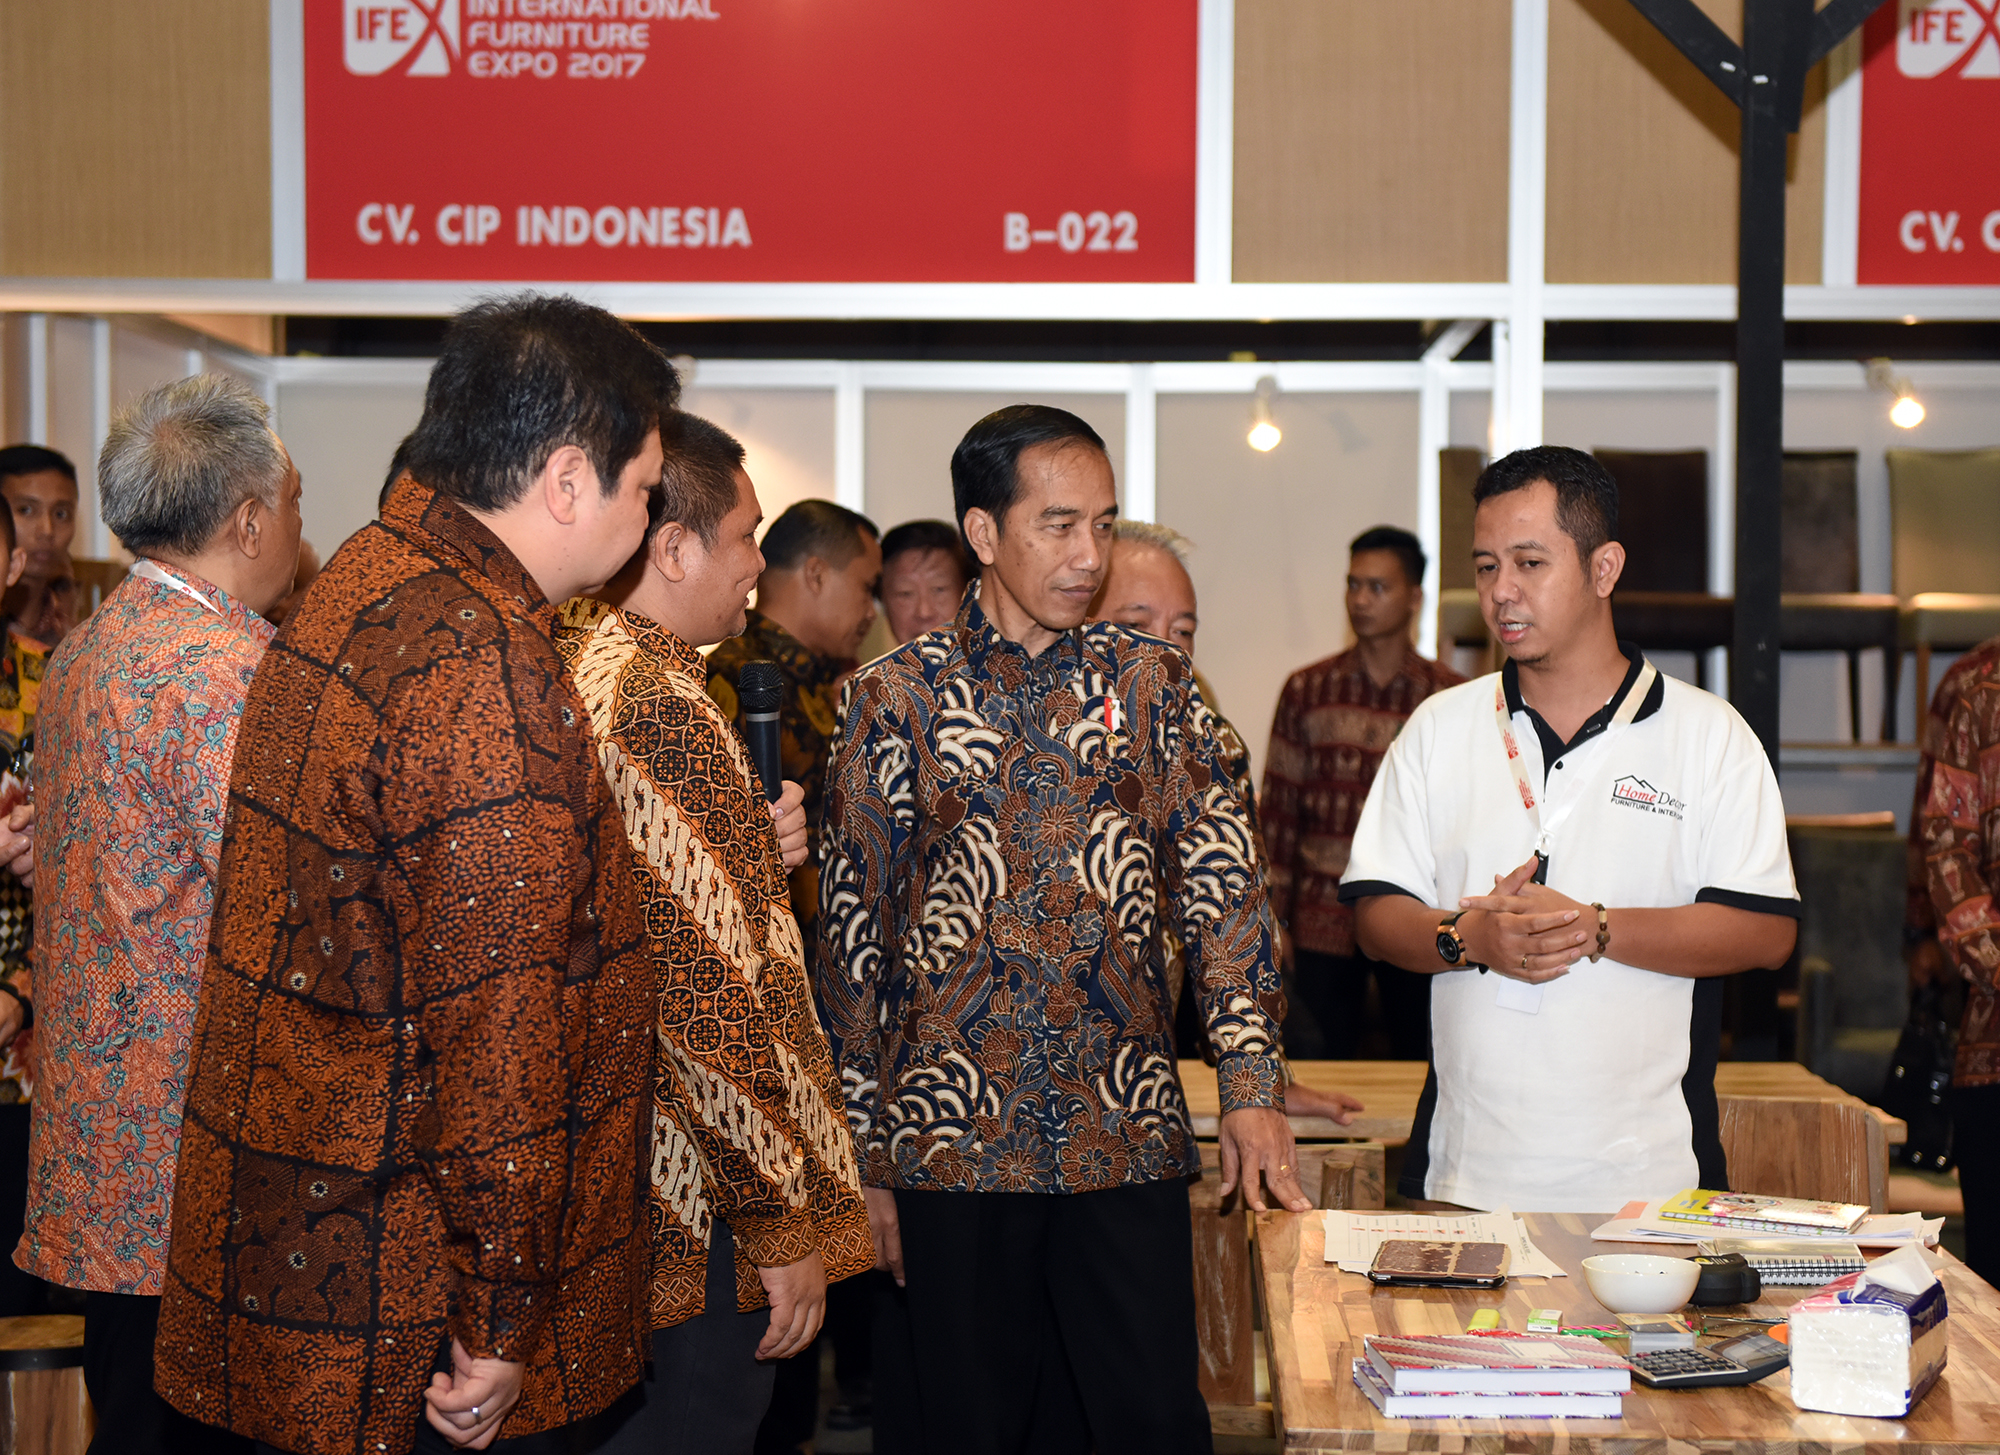 President Jokowi visits the exhibition of the 2017 Indonesia International Furniture Expo (IFEX), on Saturday (11/3), at the JI-Expo Kemayoran, Jakarta